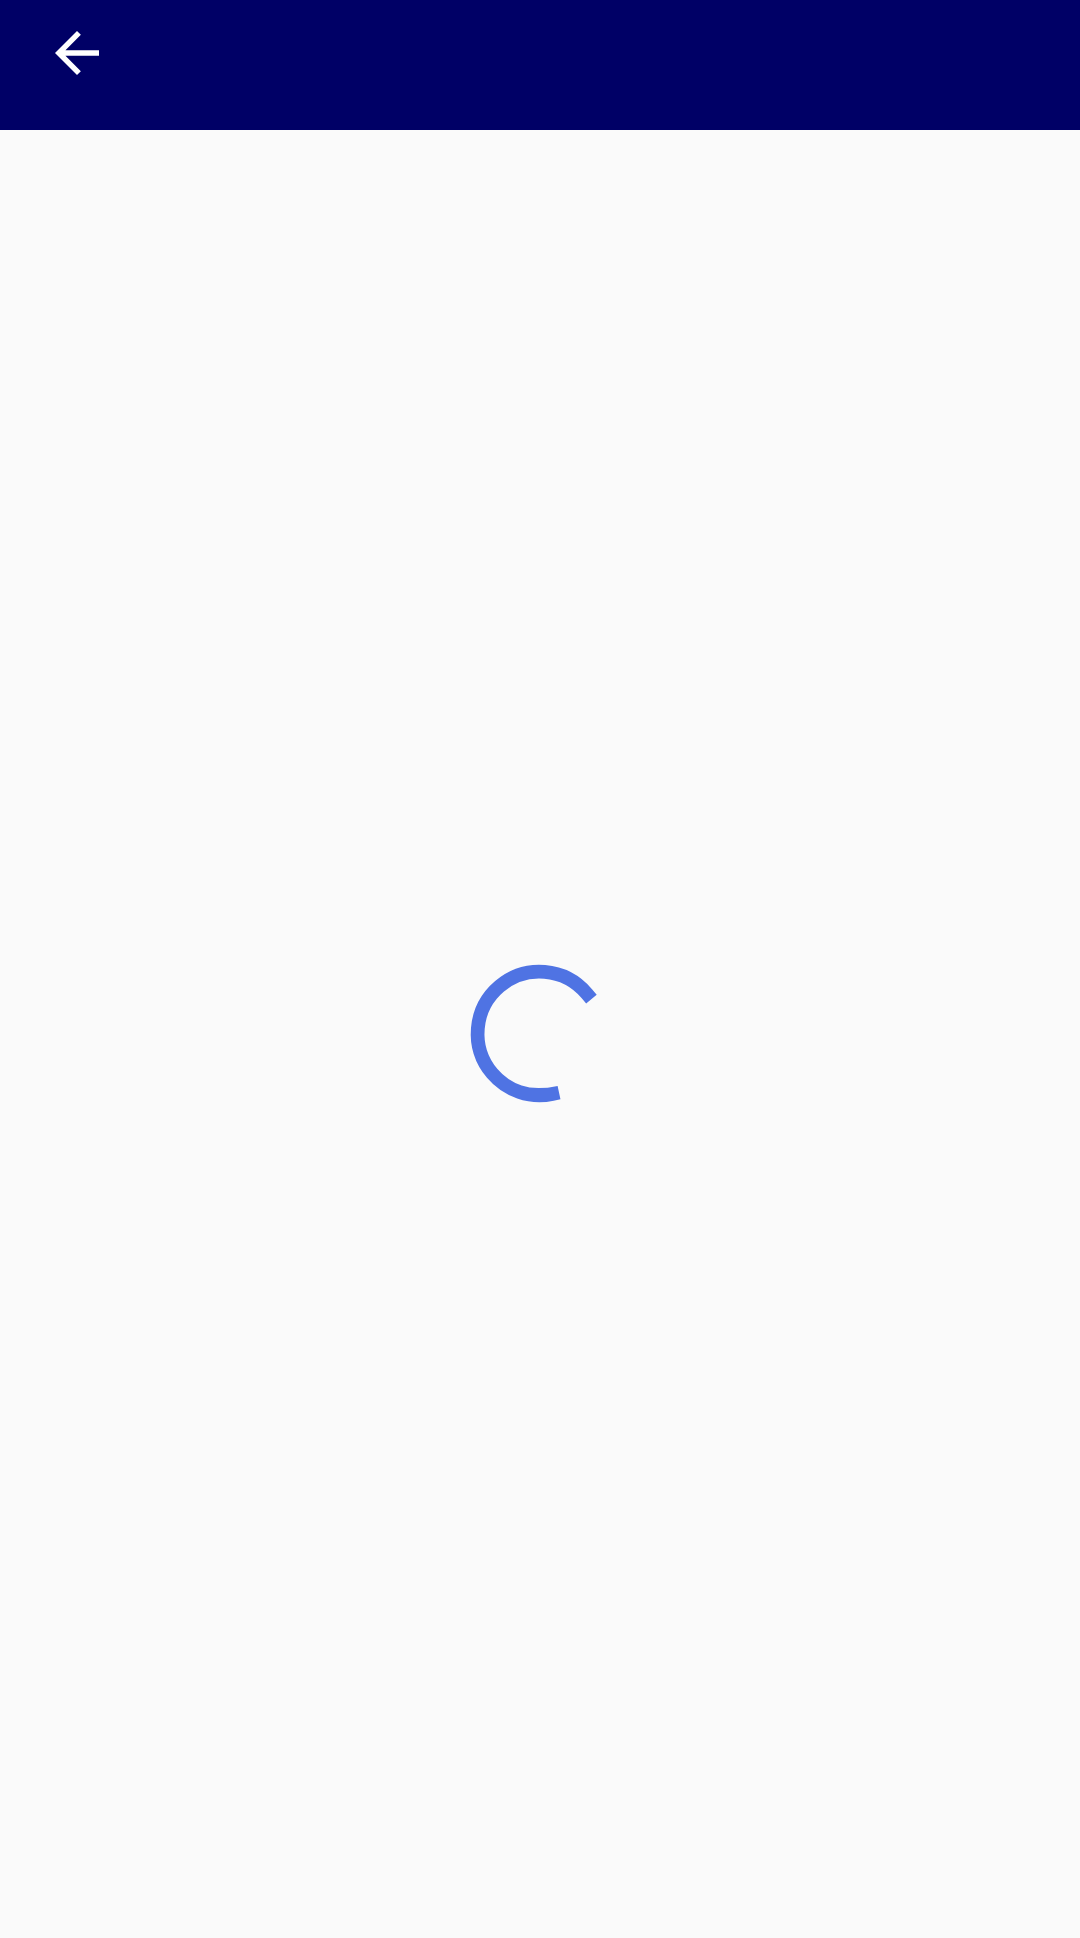 device-2019-12-02-174328.png